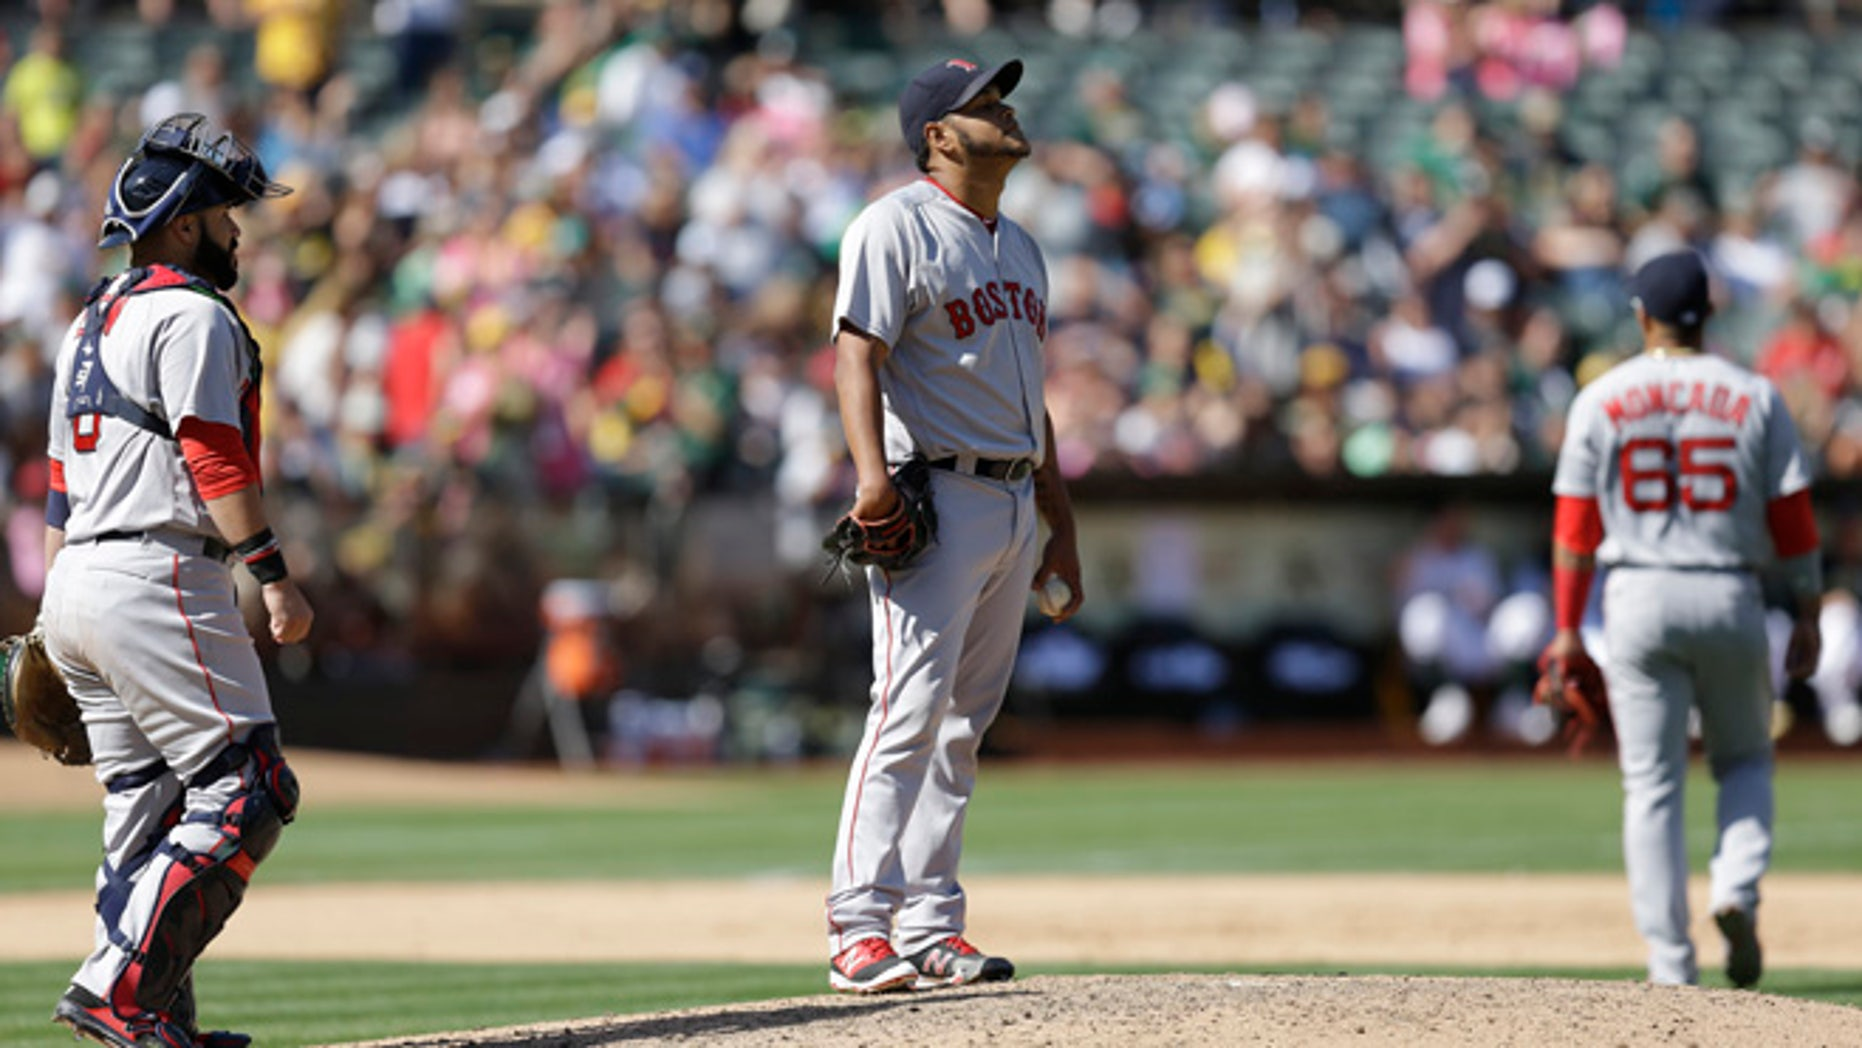 Boston Red Sox pitcher Eduardo Rodriguez, center, reacts after Oakland Athletics' Marcus Semien hit a single, breaking up a no hitter in the eighth inning of a baseball game, Sunday, Sept. 4, 2016, in Oakland, Calif. (AP Photo/Ben Margot)